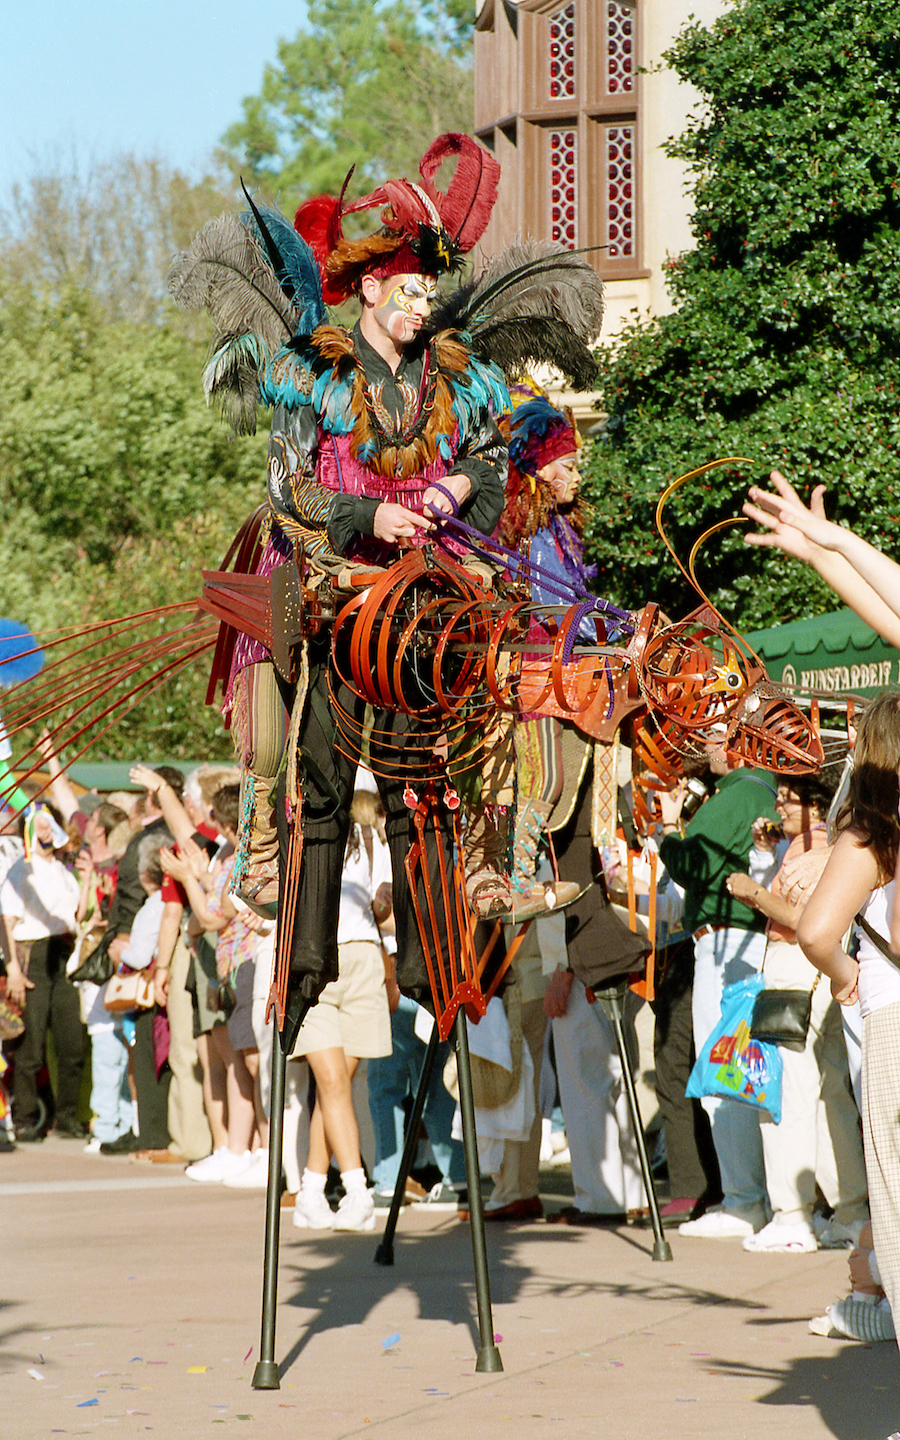 Carnivale at Epcot in 1998